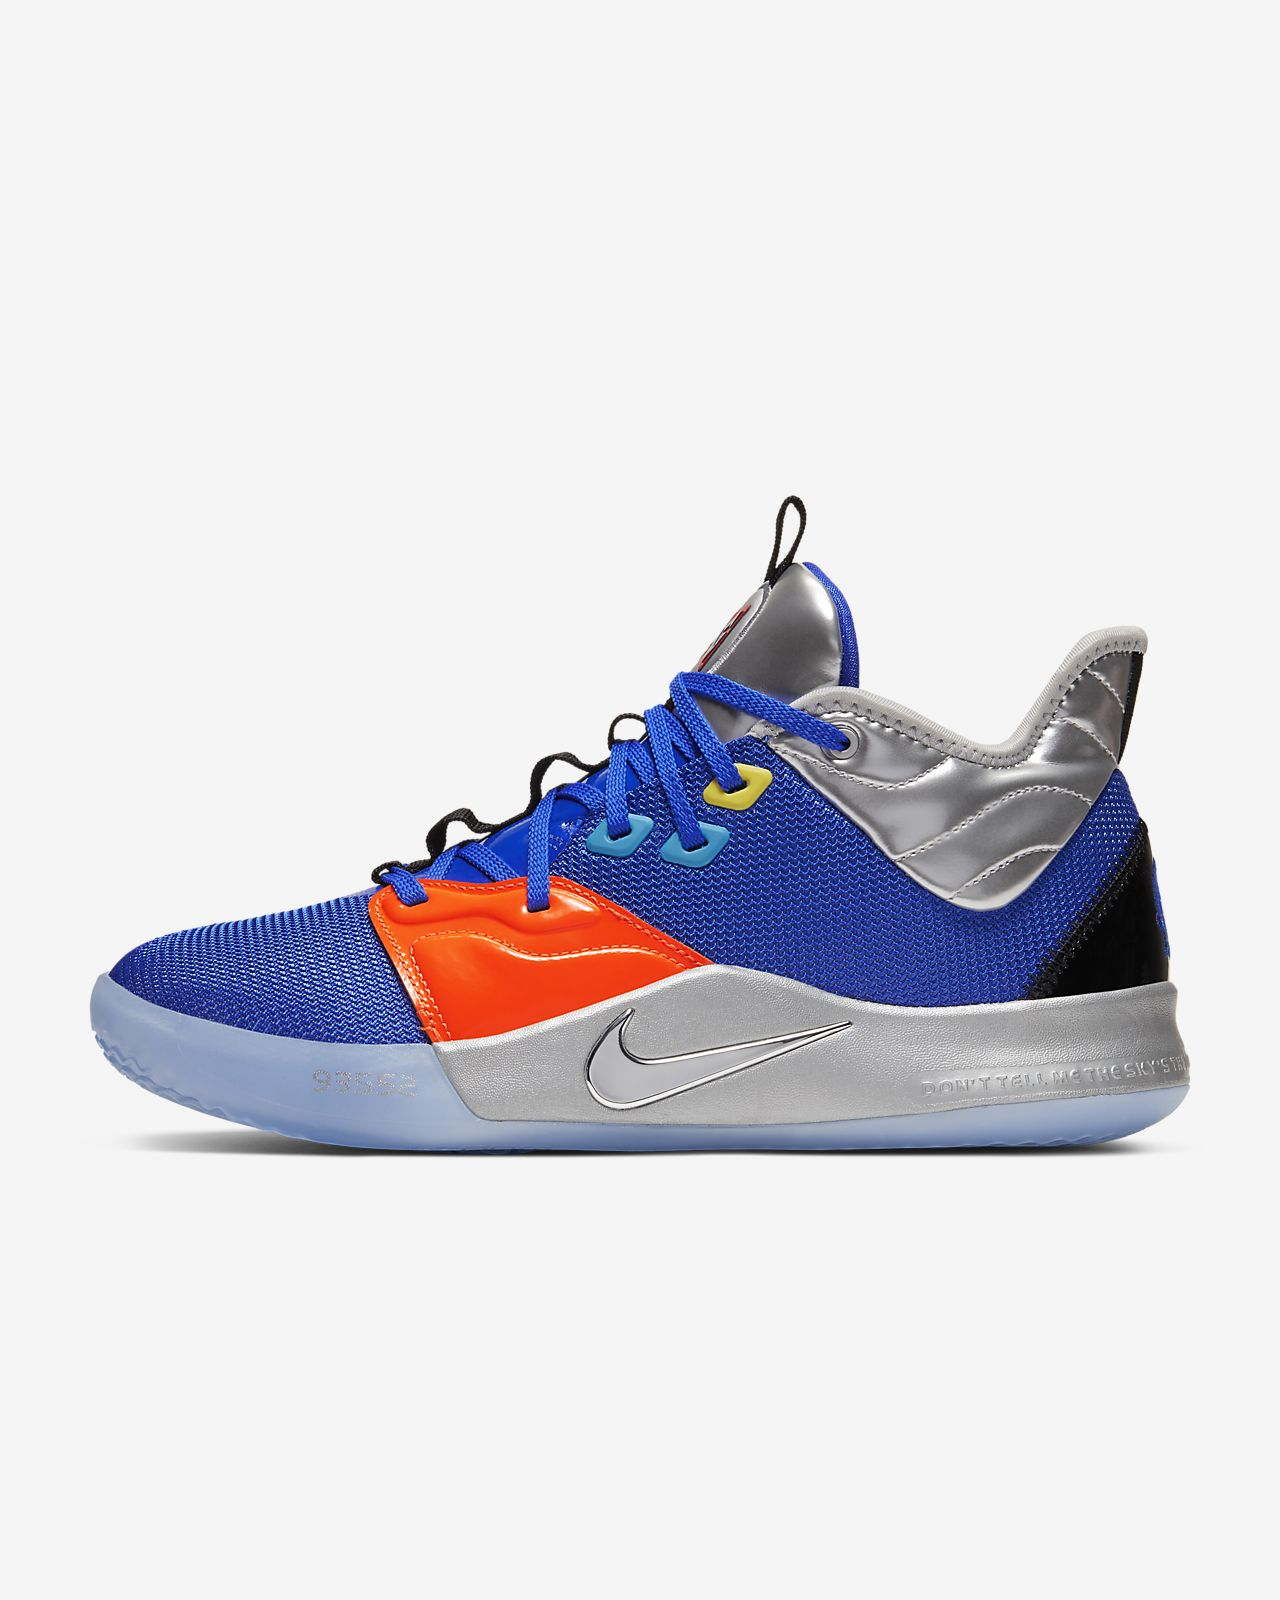 pg3 shoes nasa Kevin Durant shoes on sale